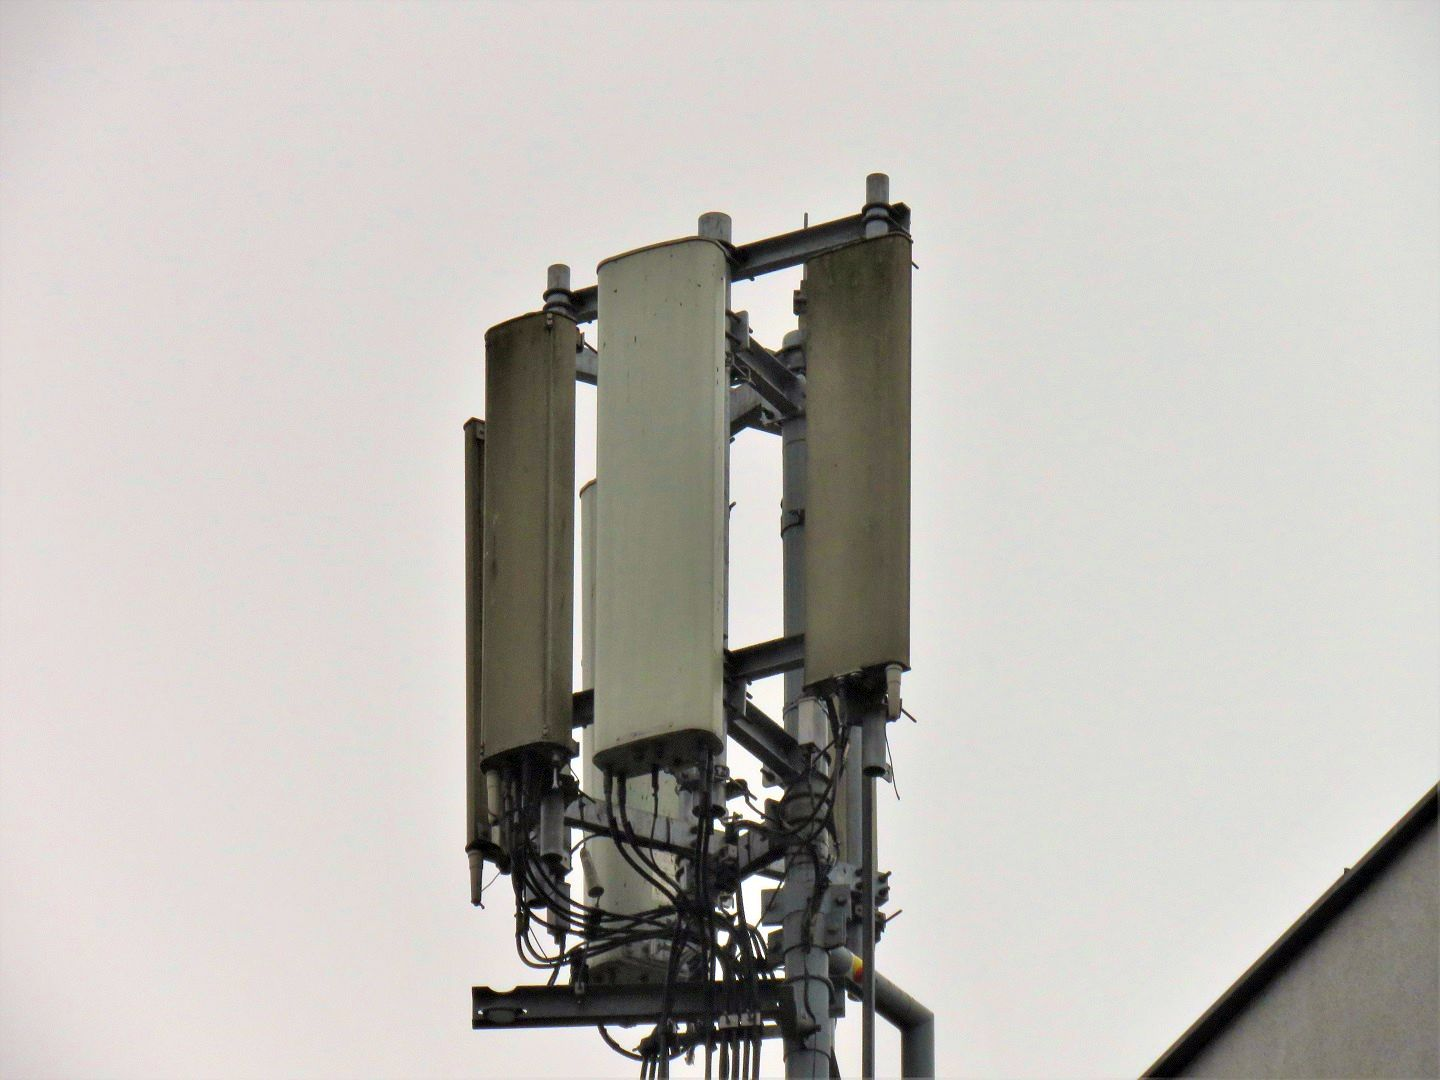 Huawei and Kathrein Antennas used by Orange and T-Mobile